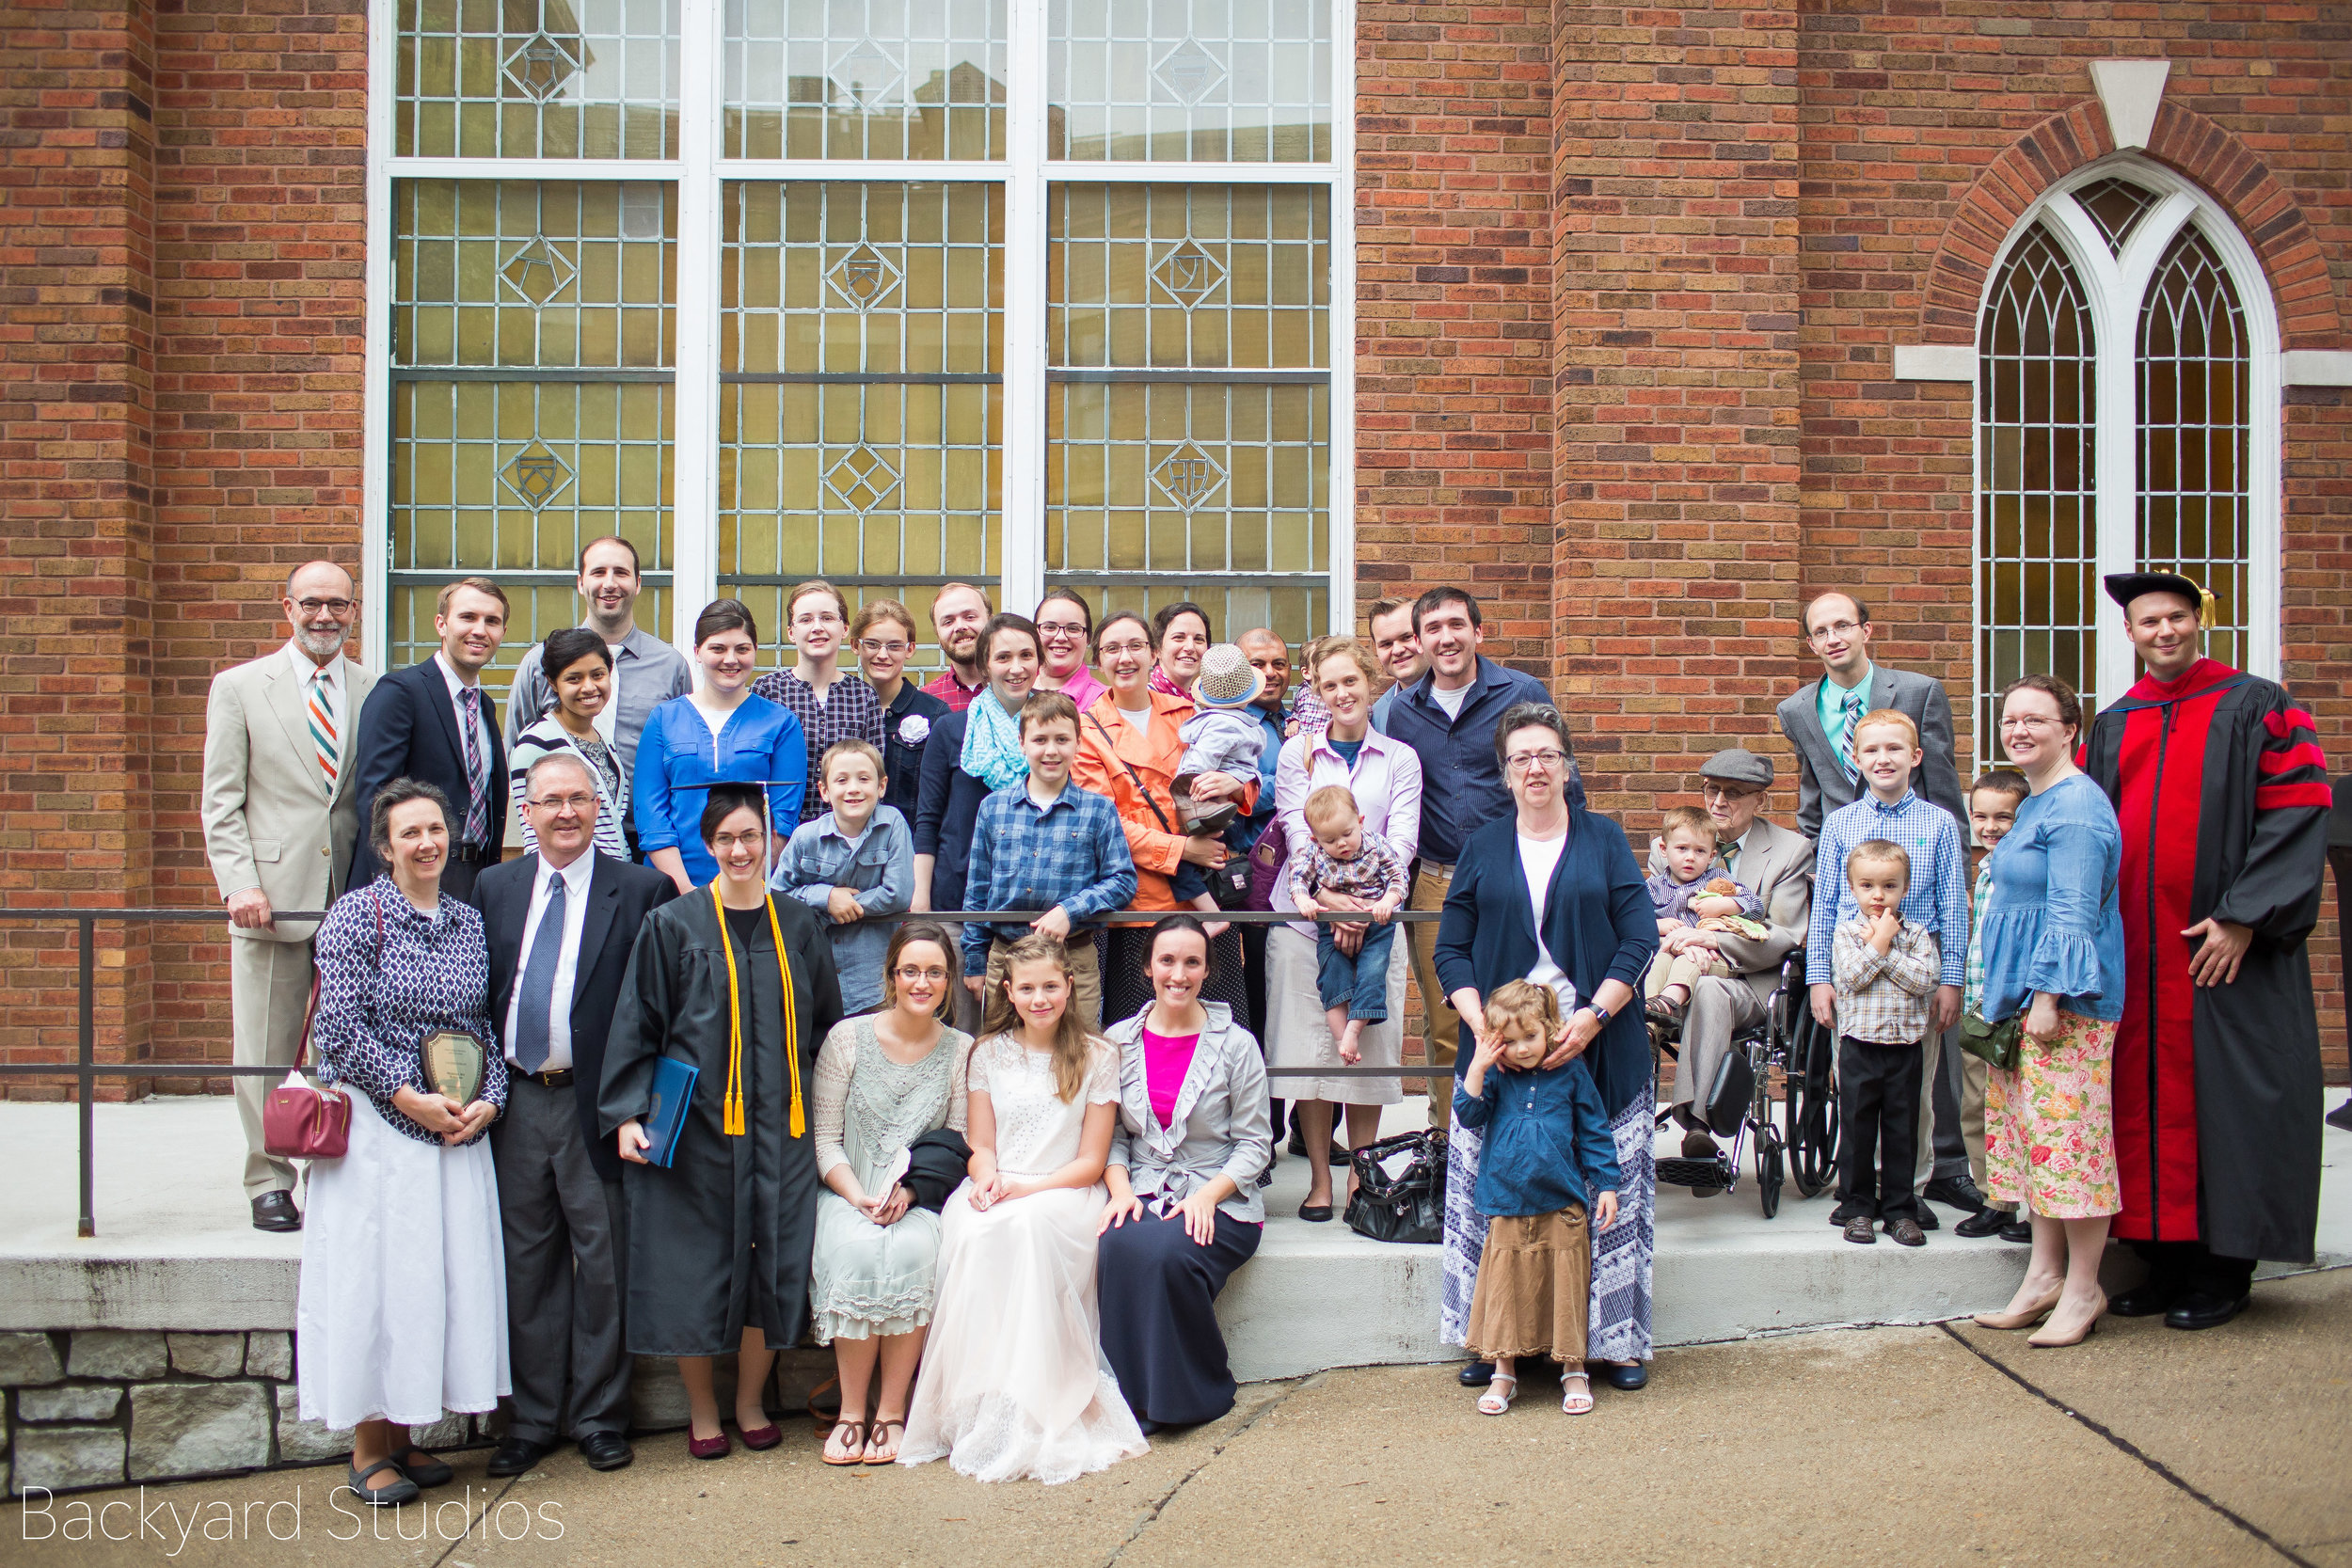 With most of my friends and family that came to the ceremony